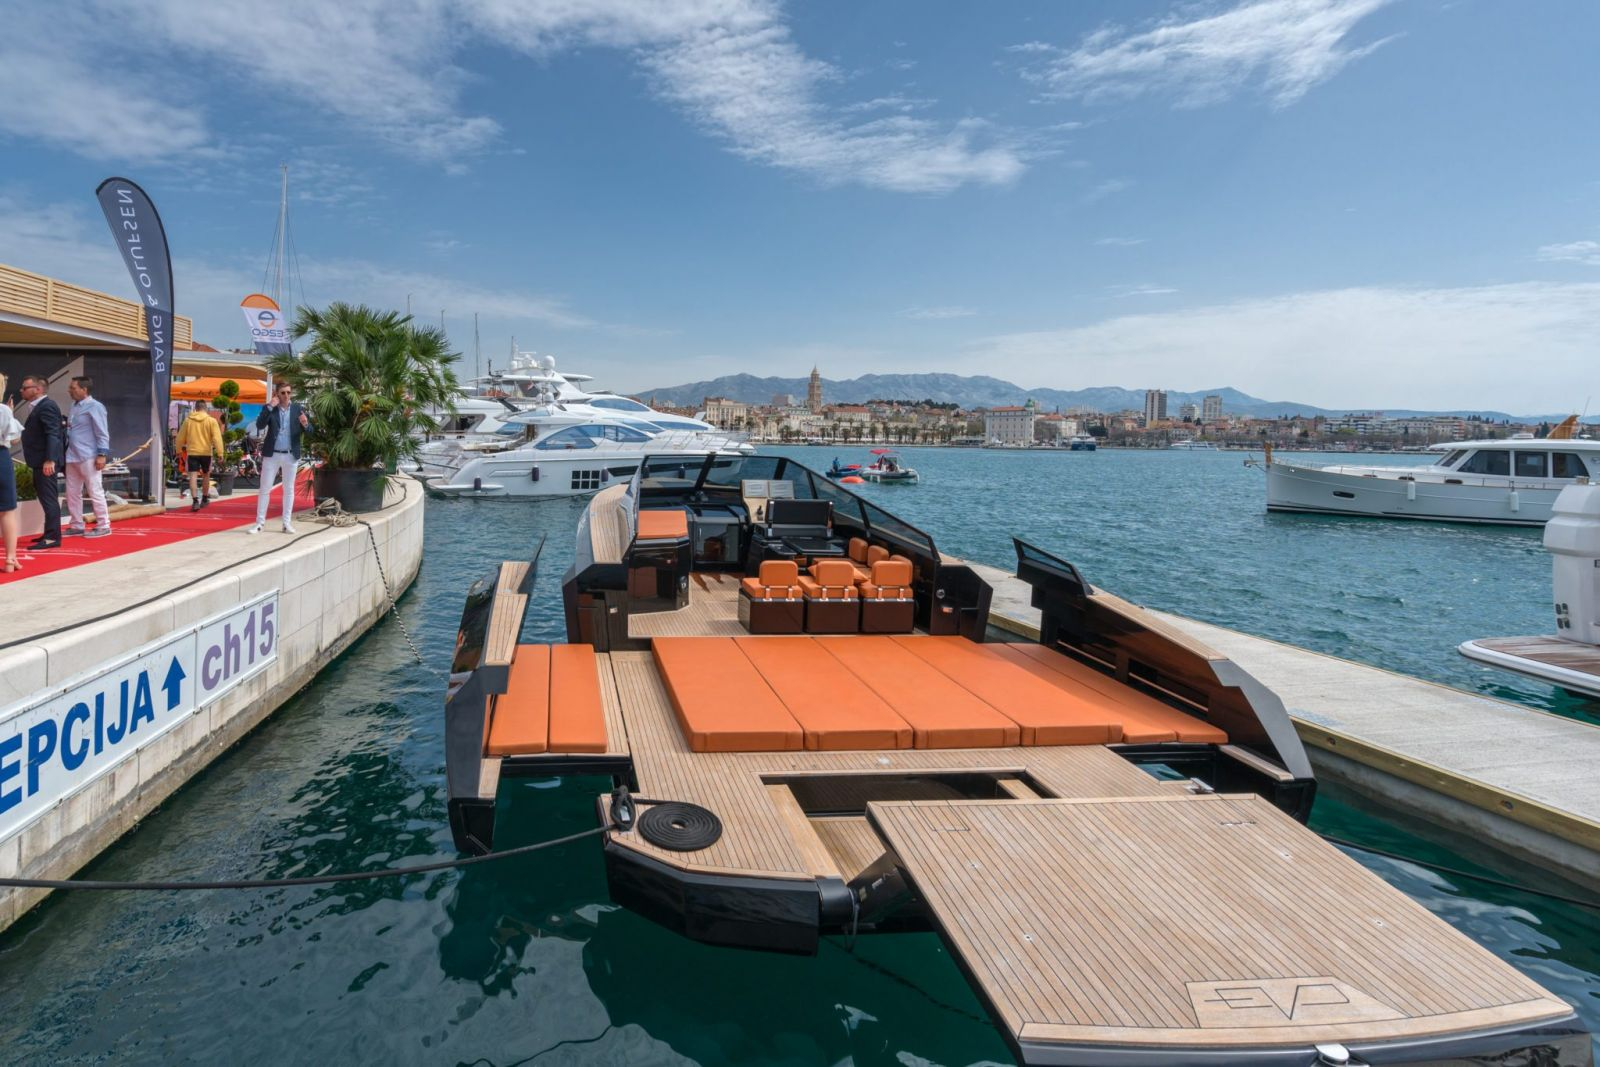 Croatia Boat Show 2018. Split PYI waterfront